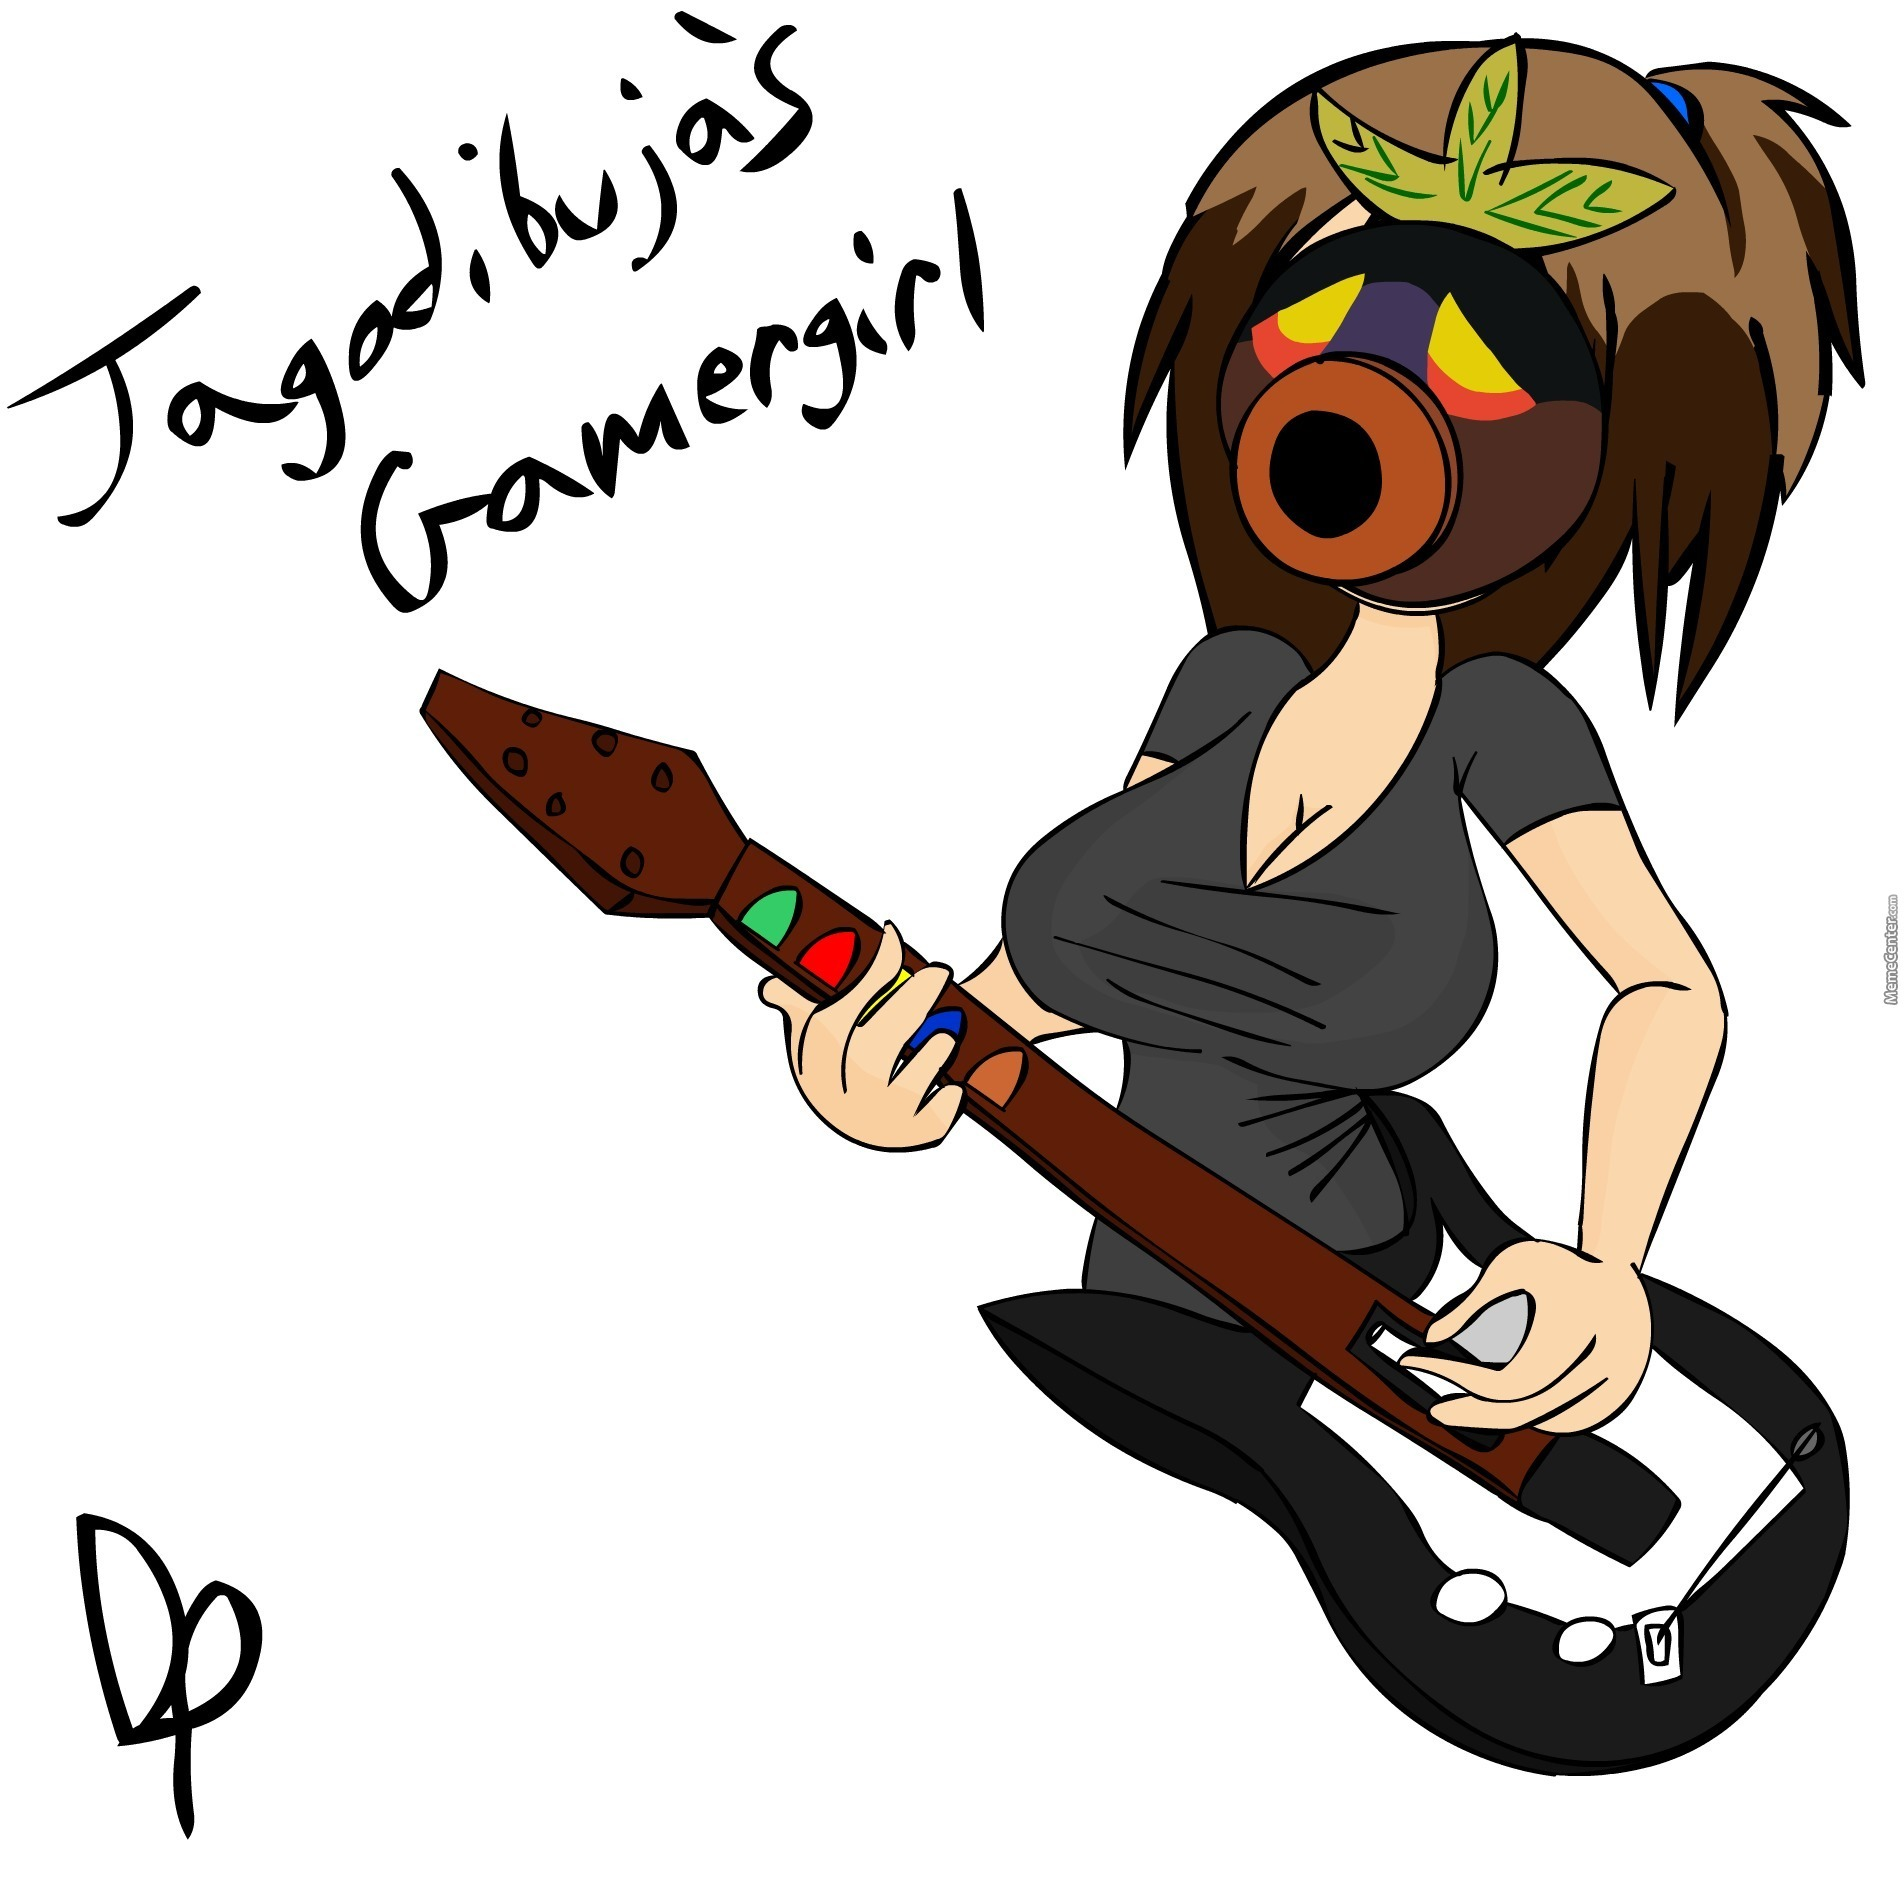 Girls Of Memecenter Day 26  Jagodibuja s Gamergirl. Girls Of Memecenter Day 26  Jagodibuja s Gamergirl by derpcouch3